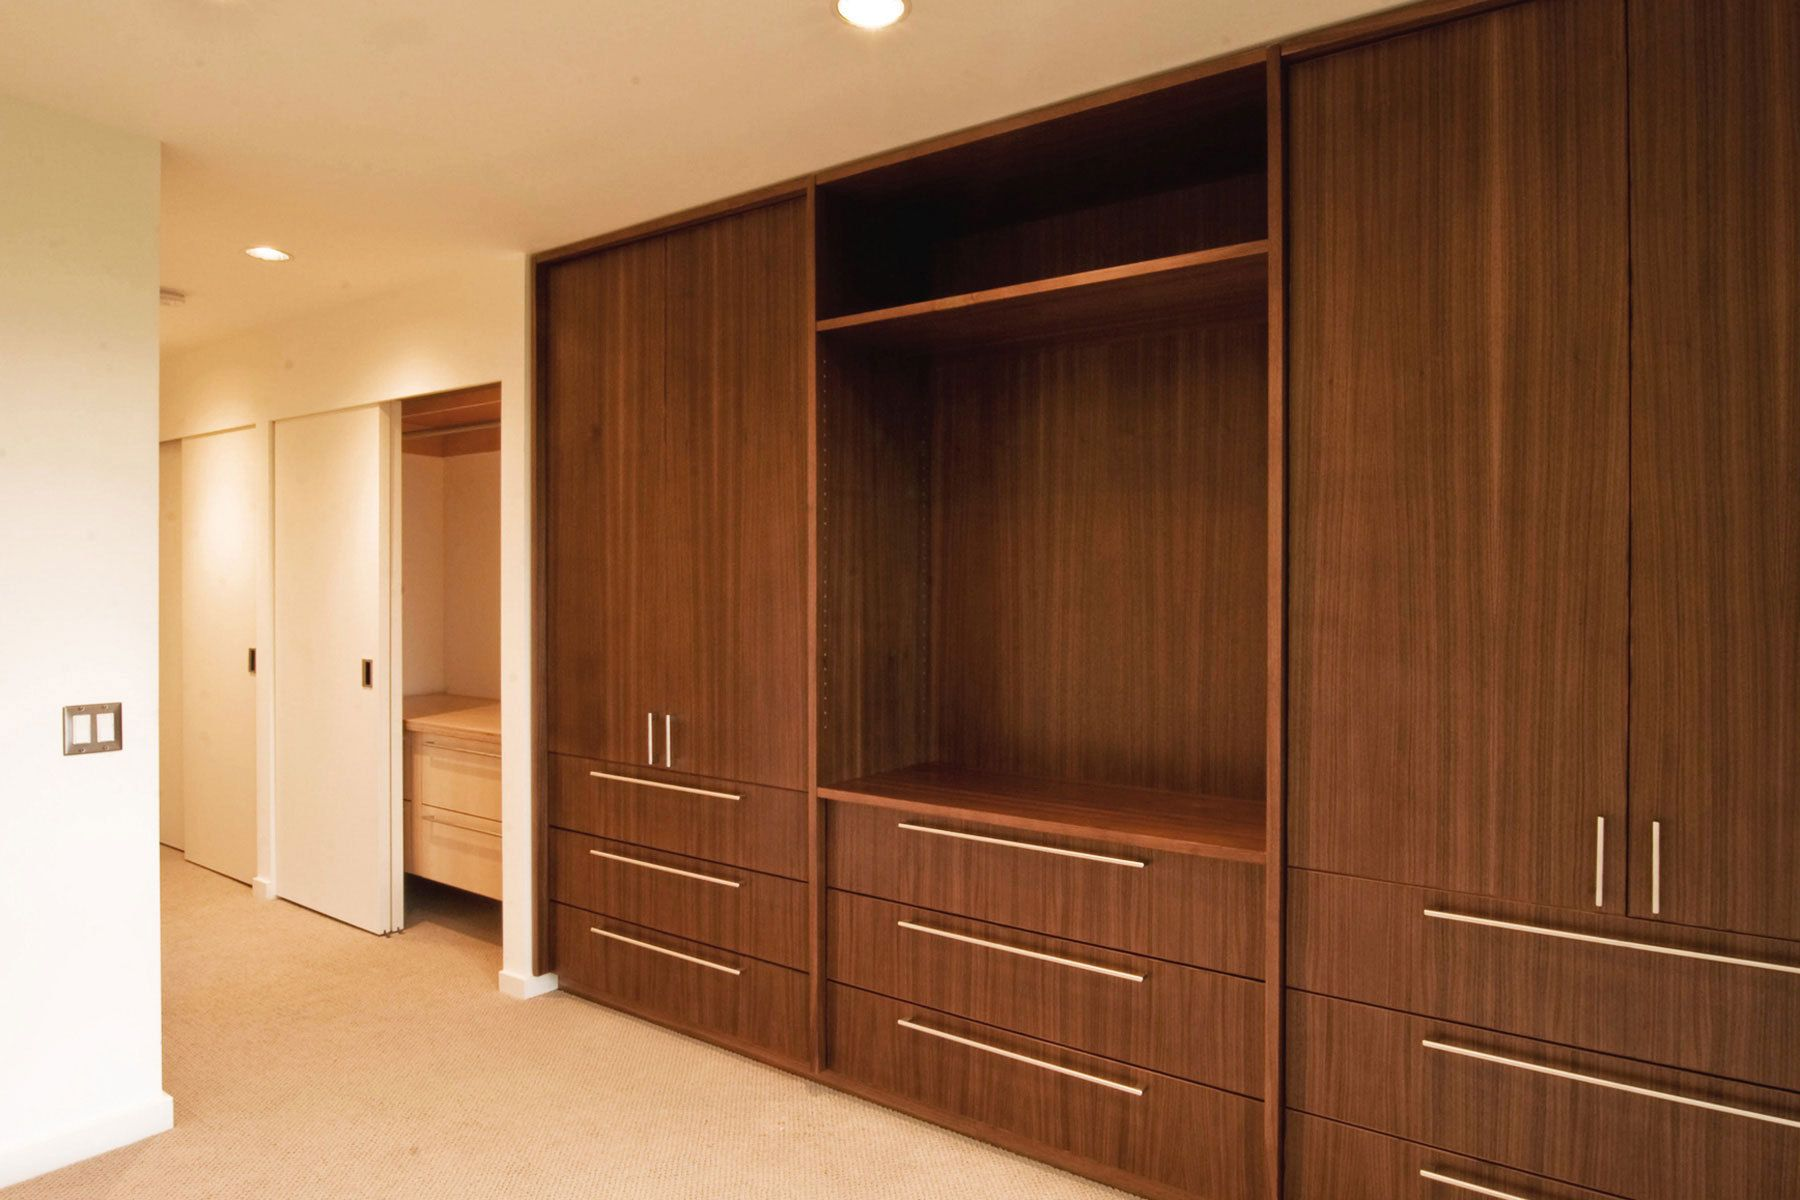 Cupboards Designs Drawers With Doors Above Similar To The Look Of The